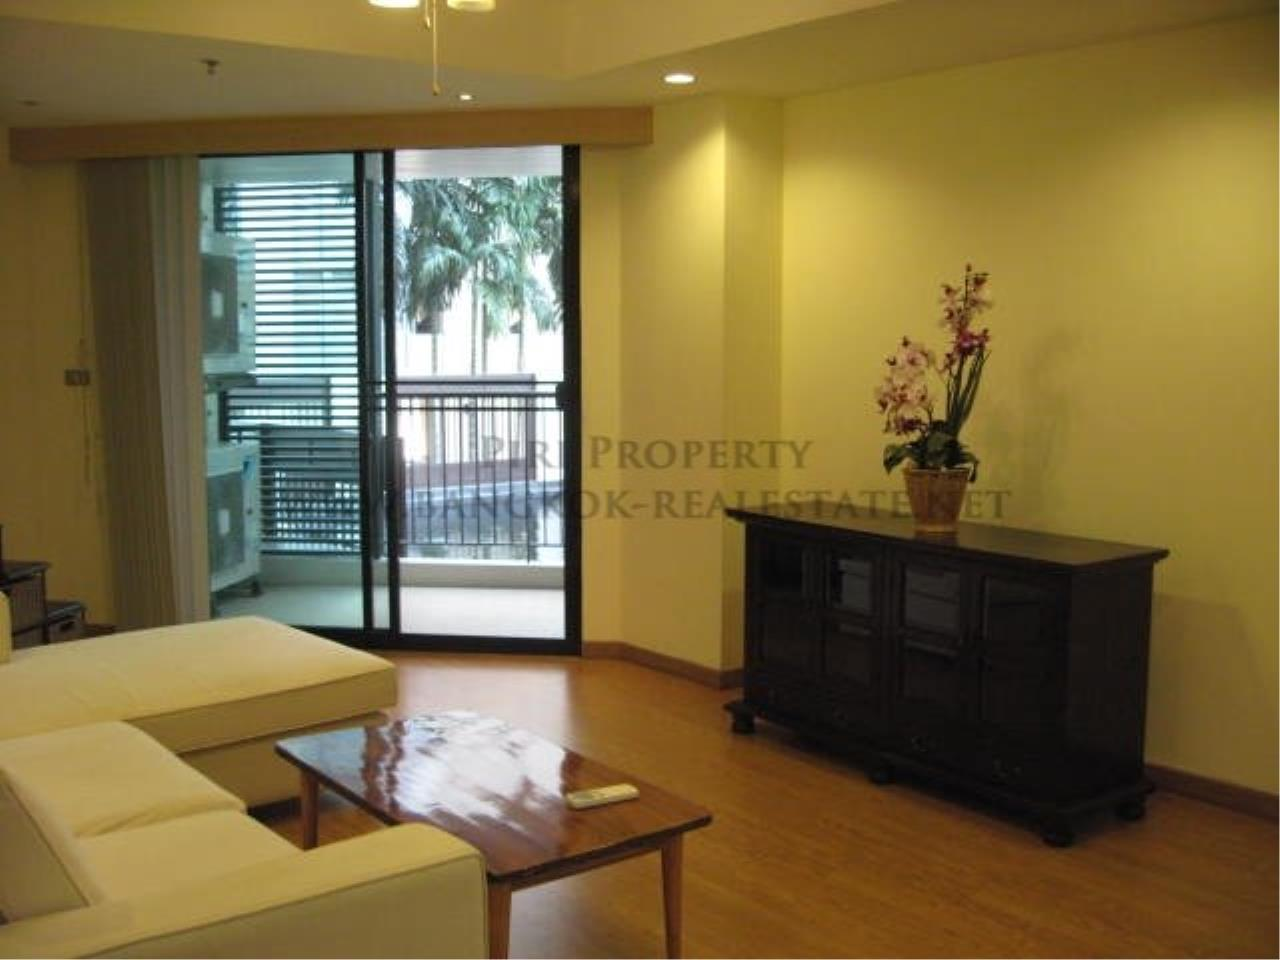 Piri Property Agency's Two Bedroom Condo with direct pool access - 59 Heritage in Ekkamai for Sale 1